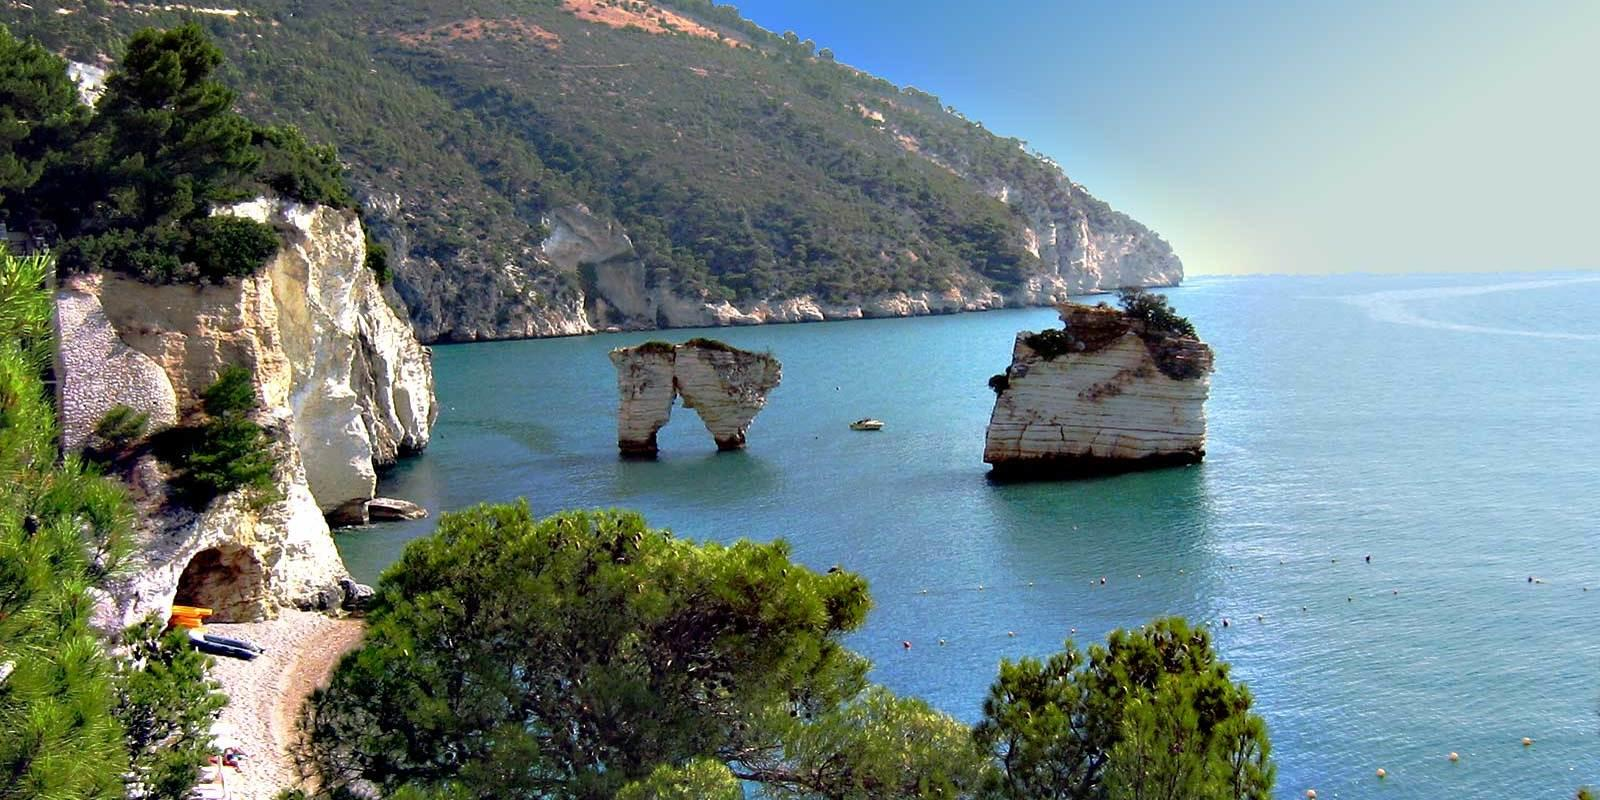 5 days at the Gargano National Park and the Tremiti Islands Marine Protected Area